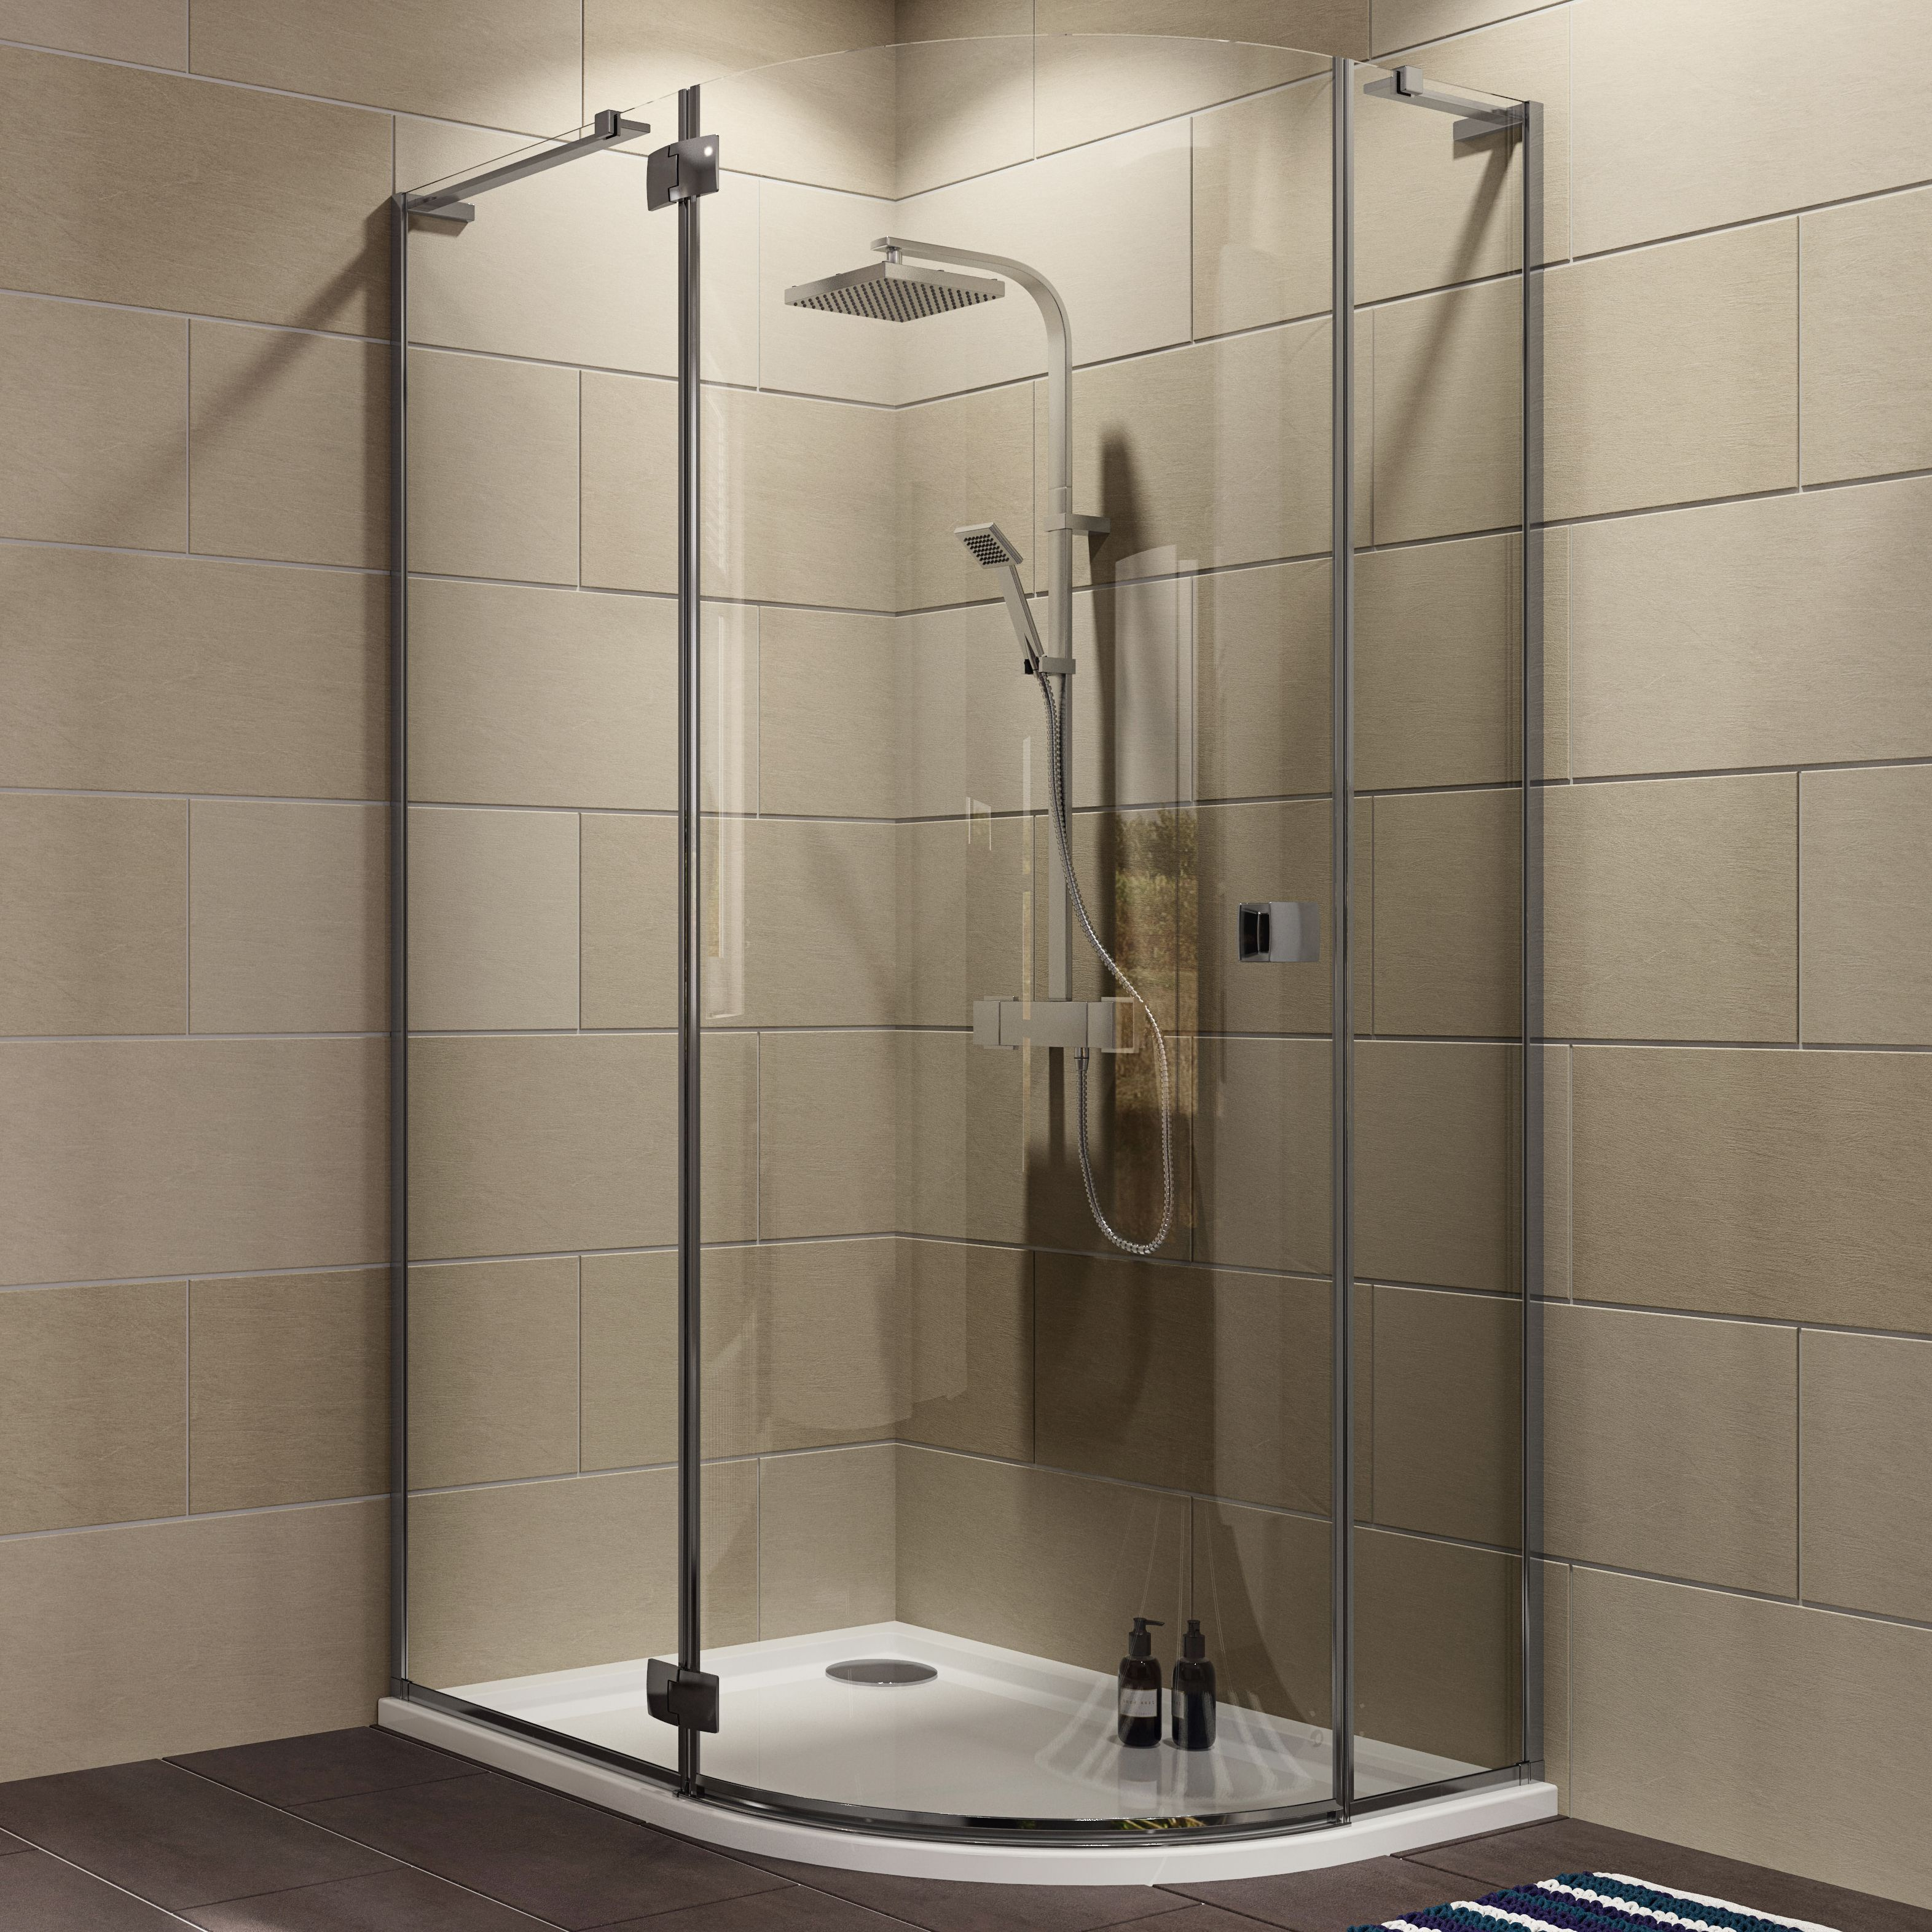 Cooke & Lewis Luxuriant Offset Quadrant Lh Shower Enclosure, Tray & Waste Pack With Hinged Door (w)1200mm (d)900mm